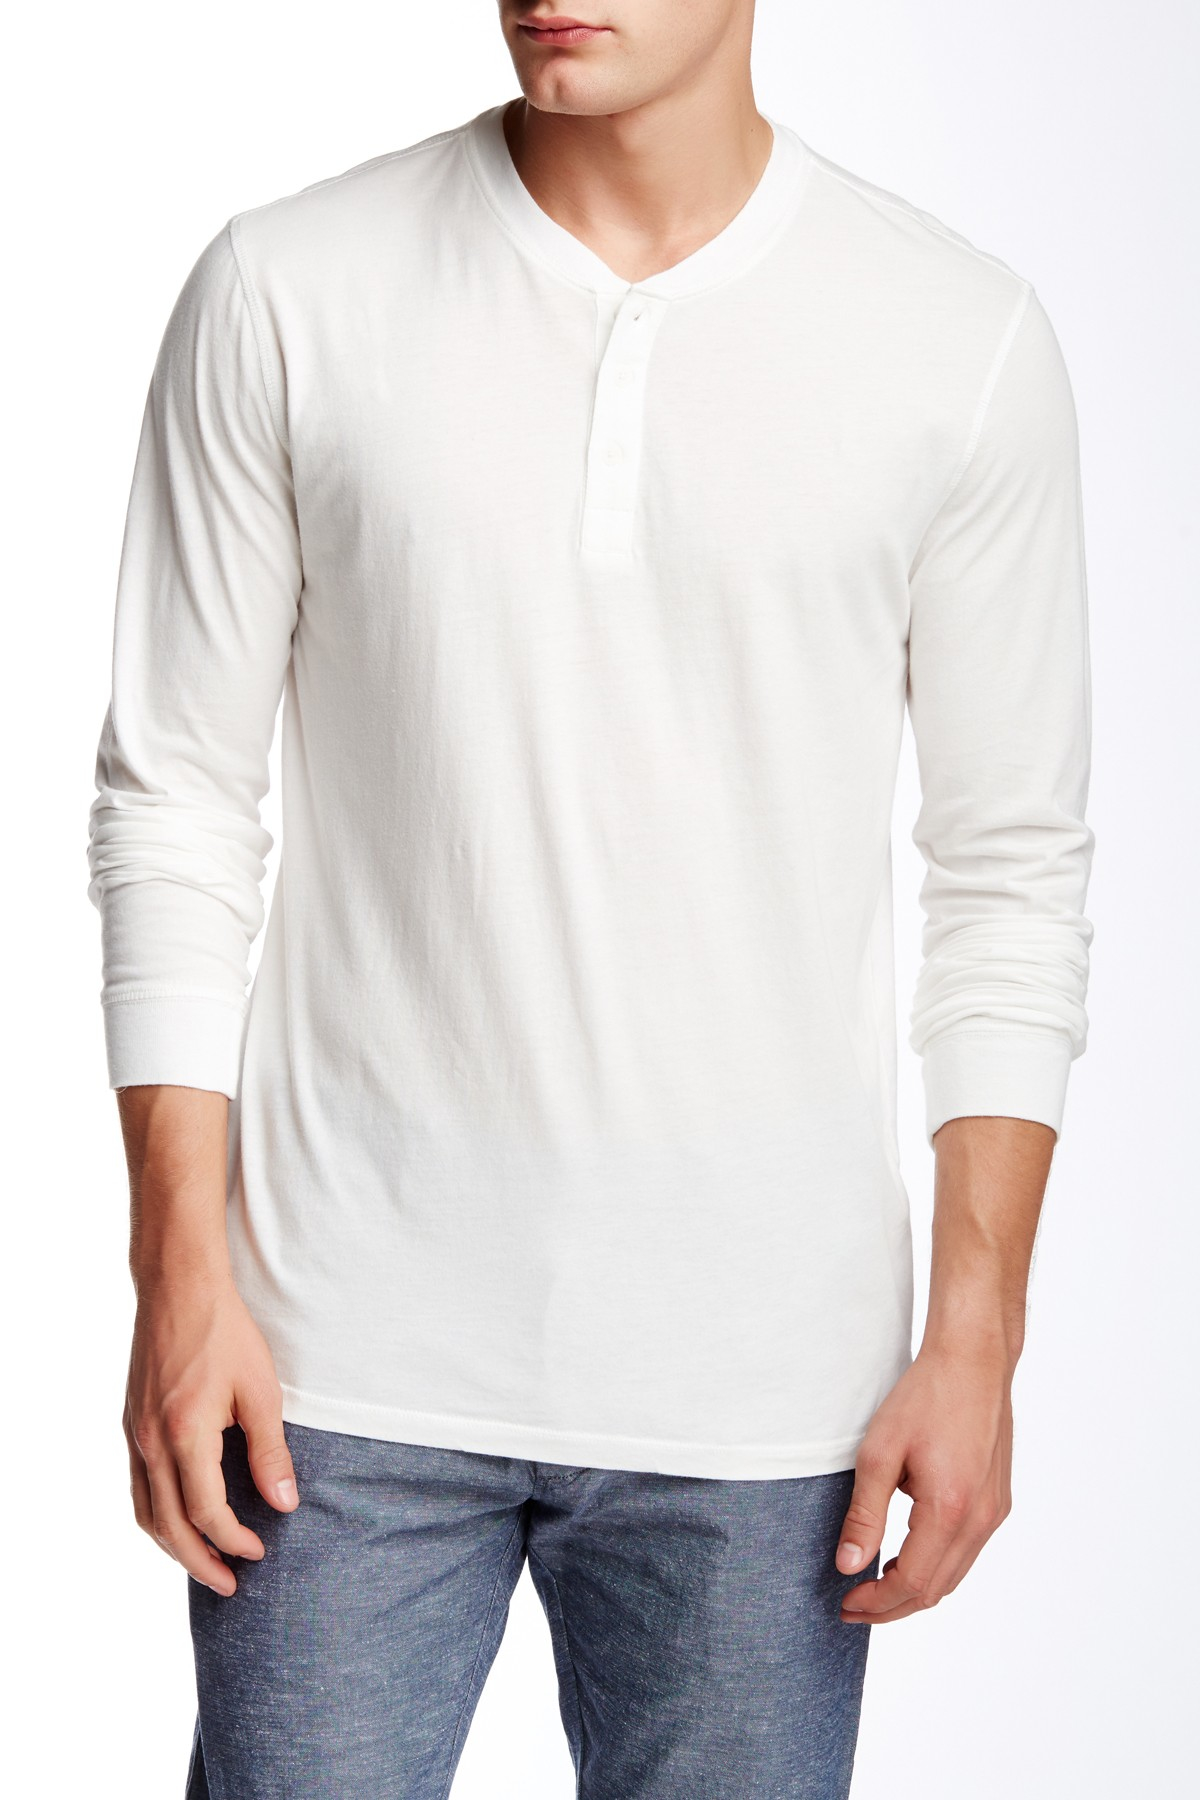 Slate And Stone Clothing : Slate stone long sleeve henley tee in white for men lyst